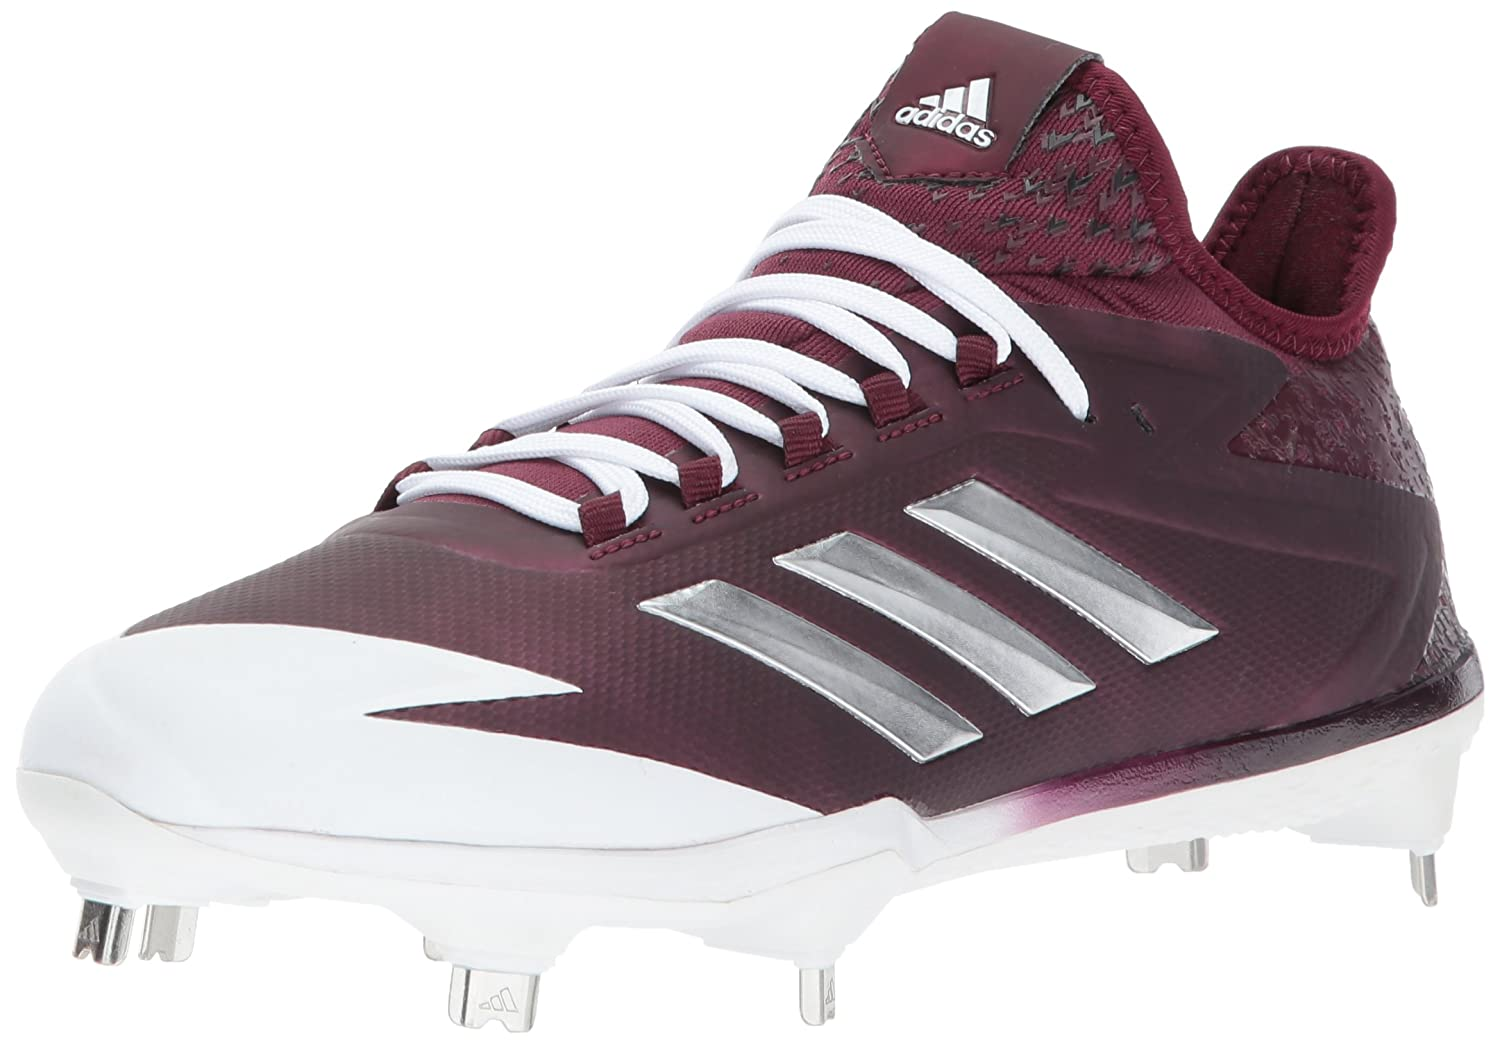 adidas Performance メンズ adizero Afterburner 4 B01N6J36H0 11.5 Medium US|Maroon/Metallic Silver/White Maroon/Metallic Silver/White 11.5 Medium US